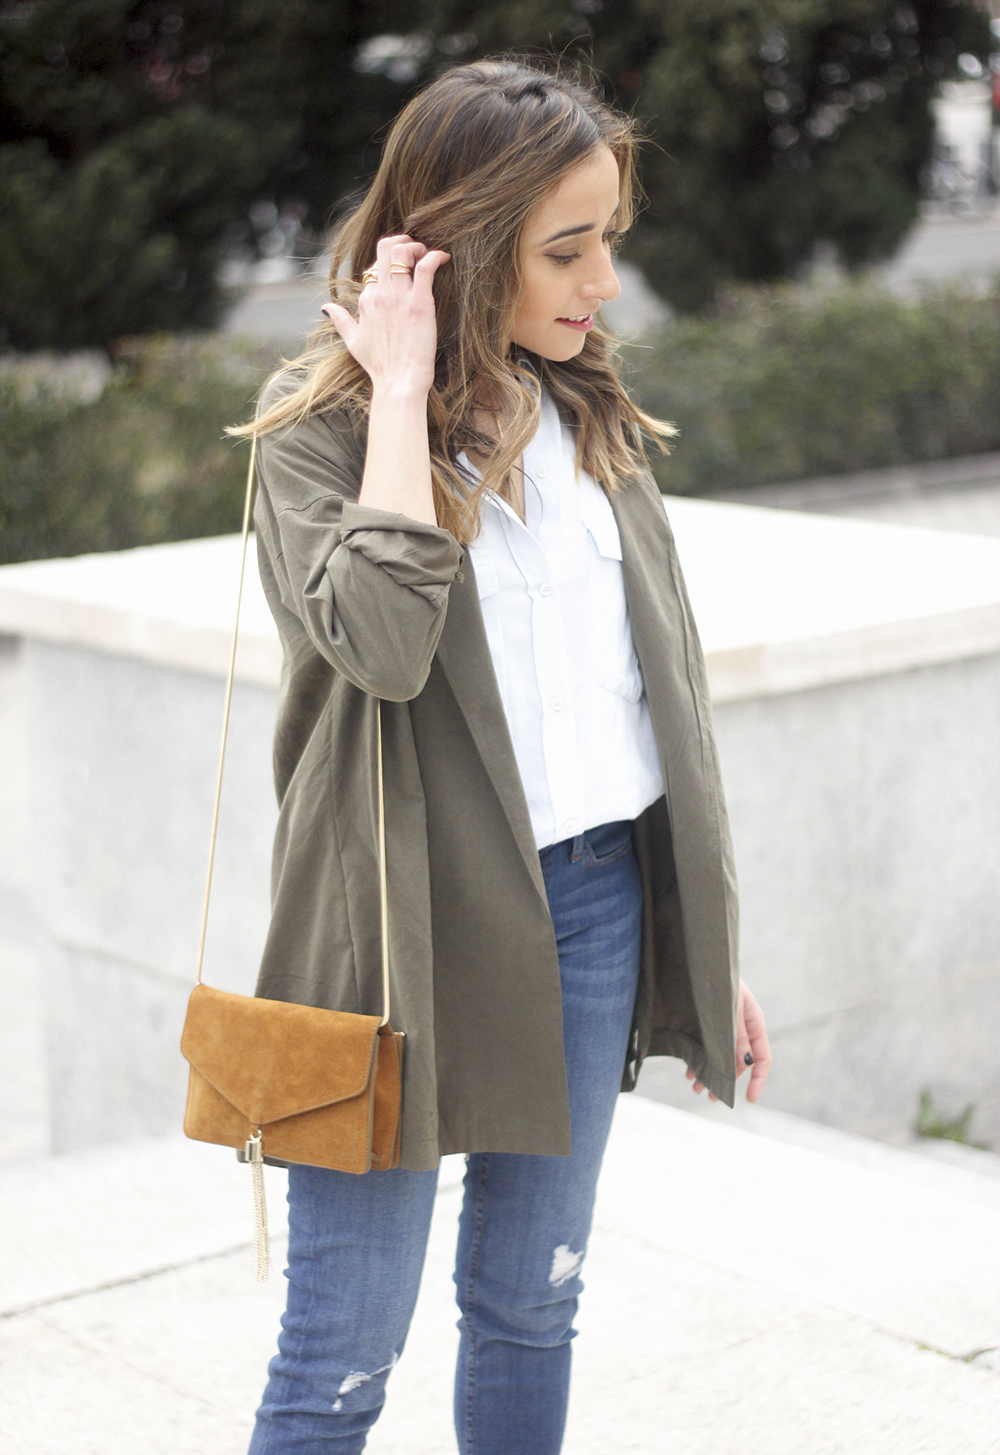 Military green shirt heels choker accessories jeans suede bag outfit07